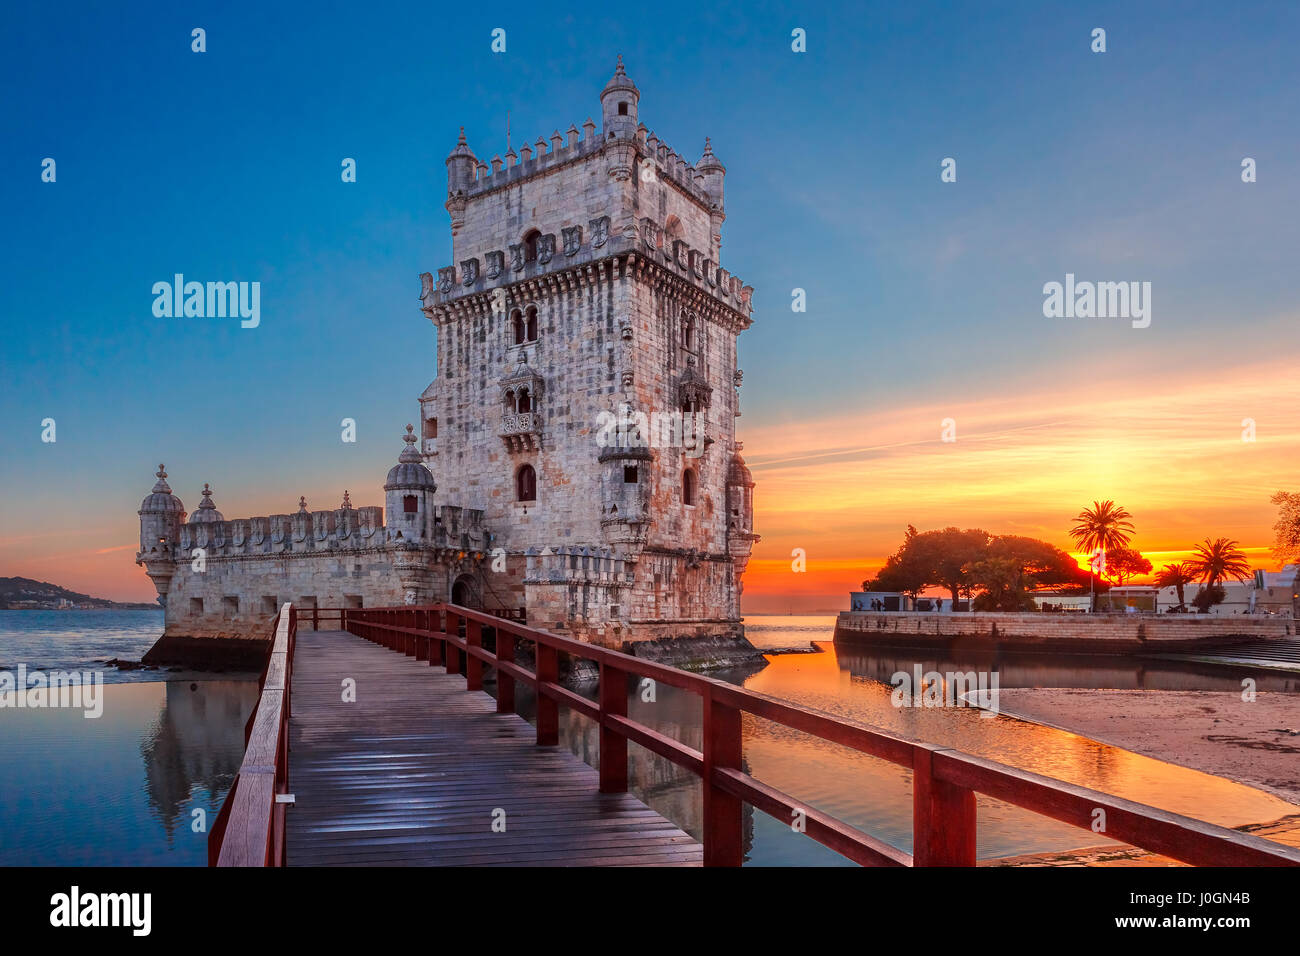 Belem Tower or Tower of St Vincent on the bank of the Tagus River at scenic sunset, Lisbon, Portugal - Stock Image